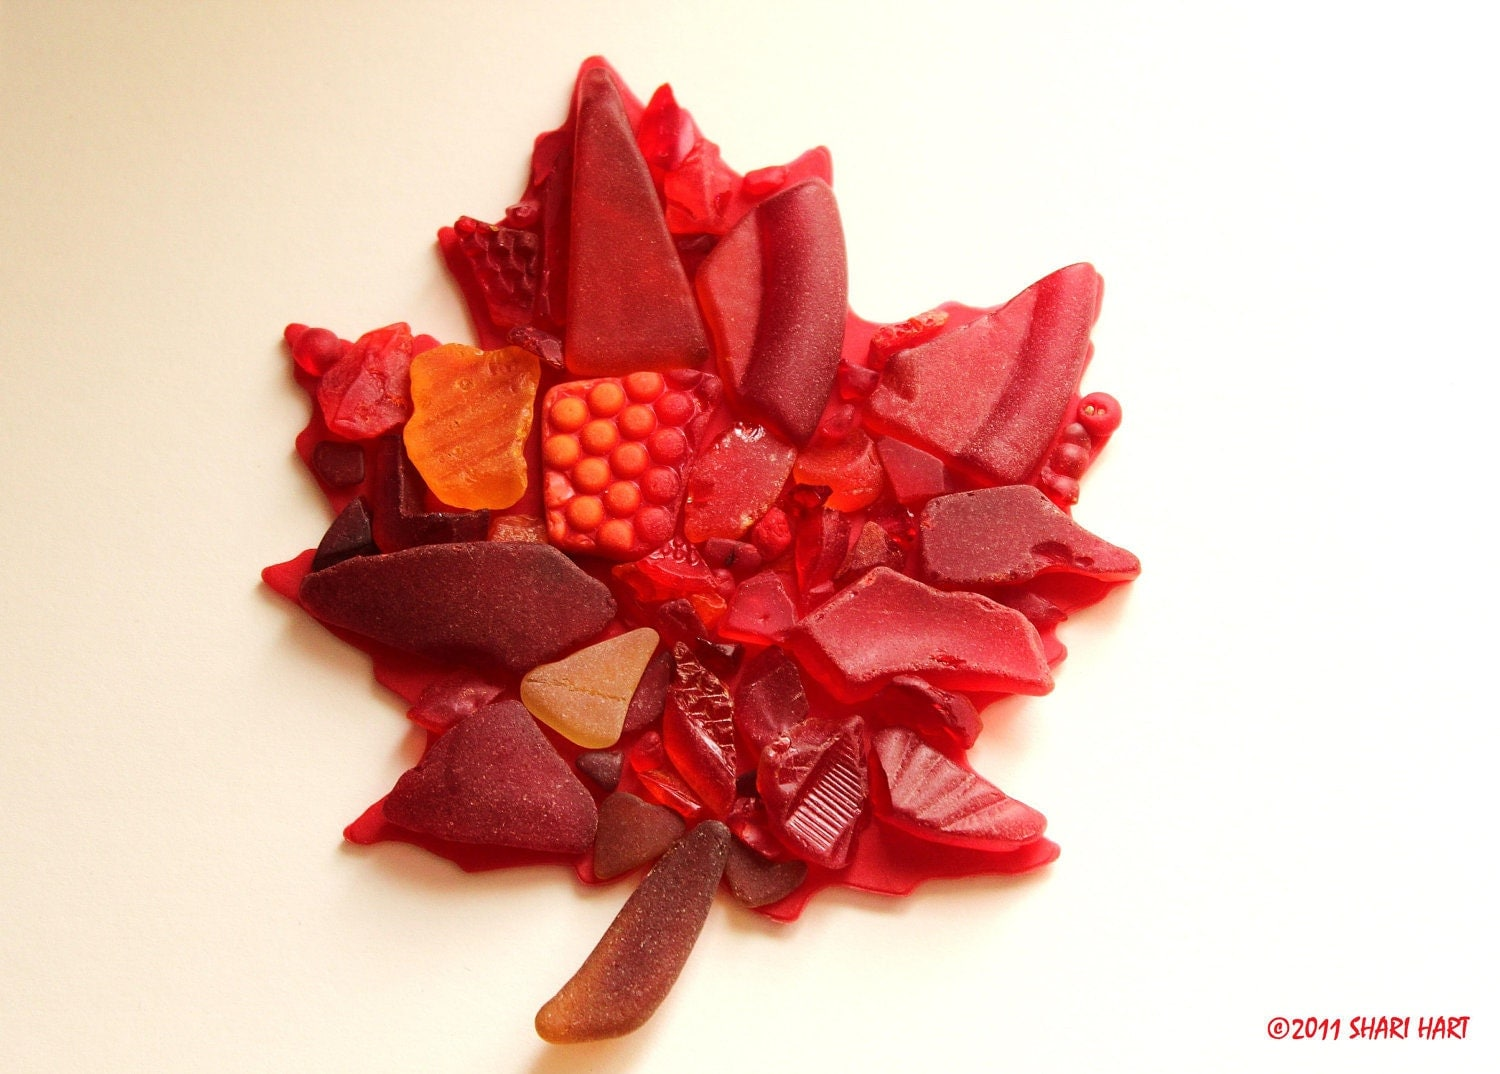 Sea Glass Photography 5x7 Print -RED MAPLE LEAF- sea glass, beach glass, red, orange, yellow, Autumn, New England, mermaid tears